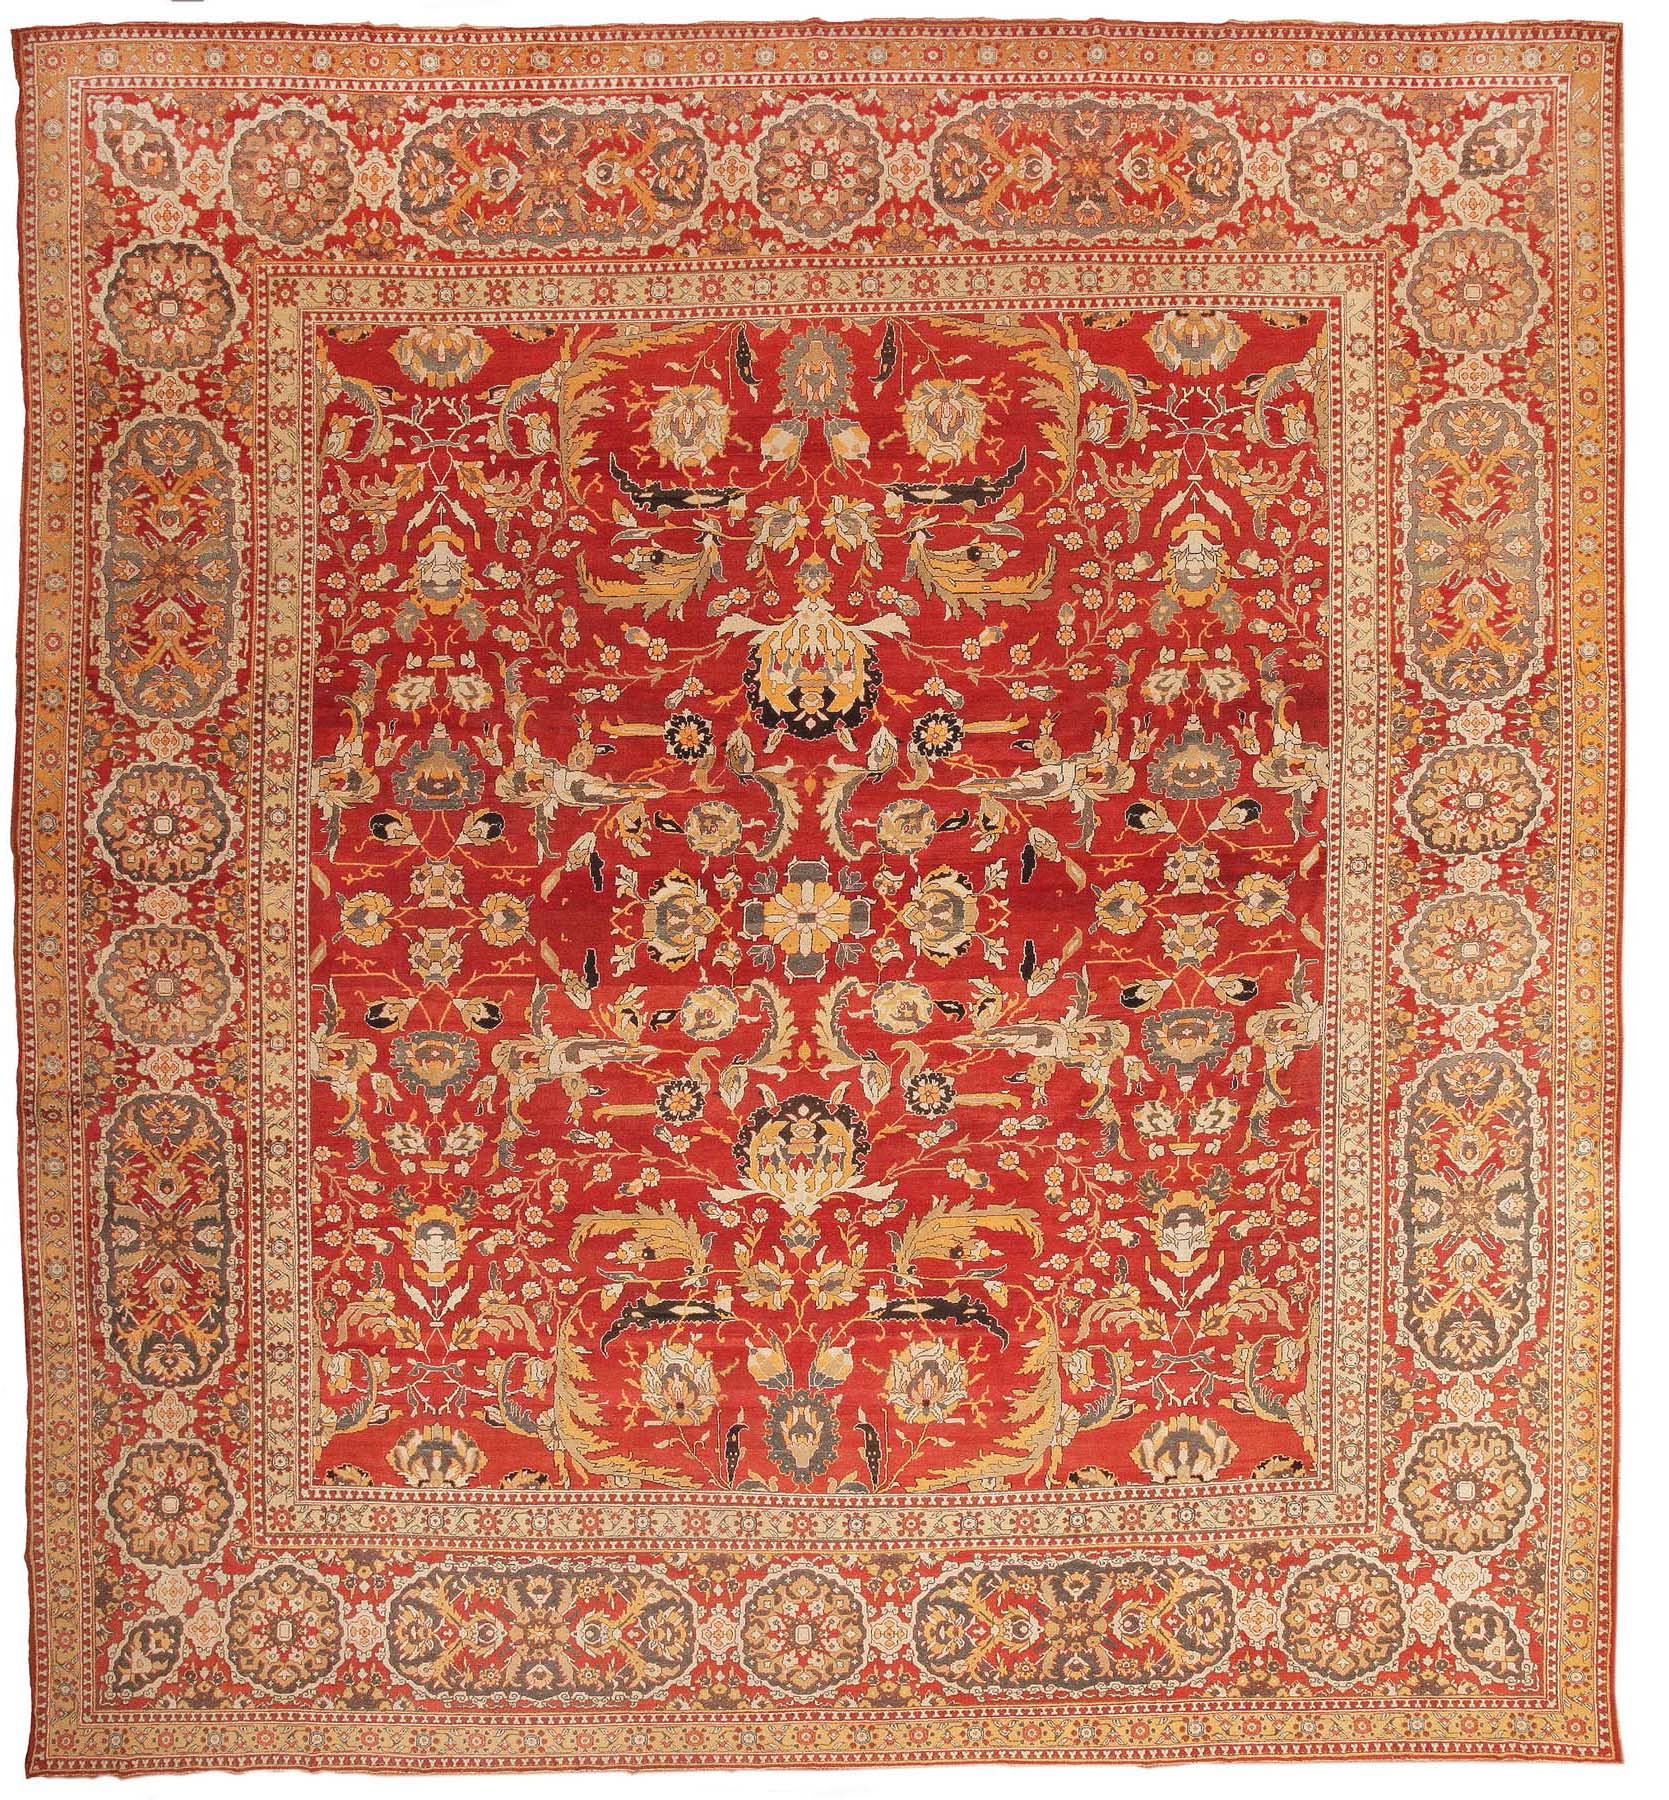 Antique Agra Oriental Rug 44615 For Sale